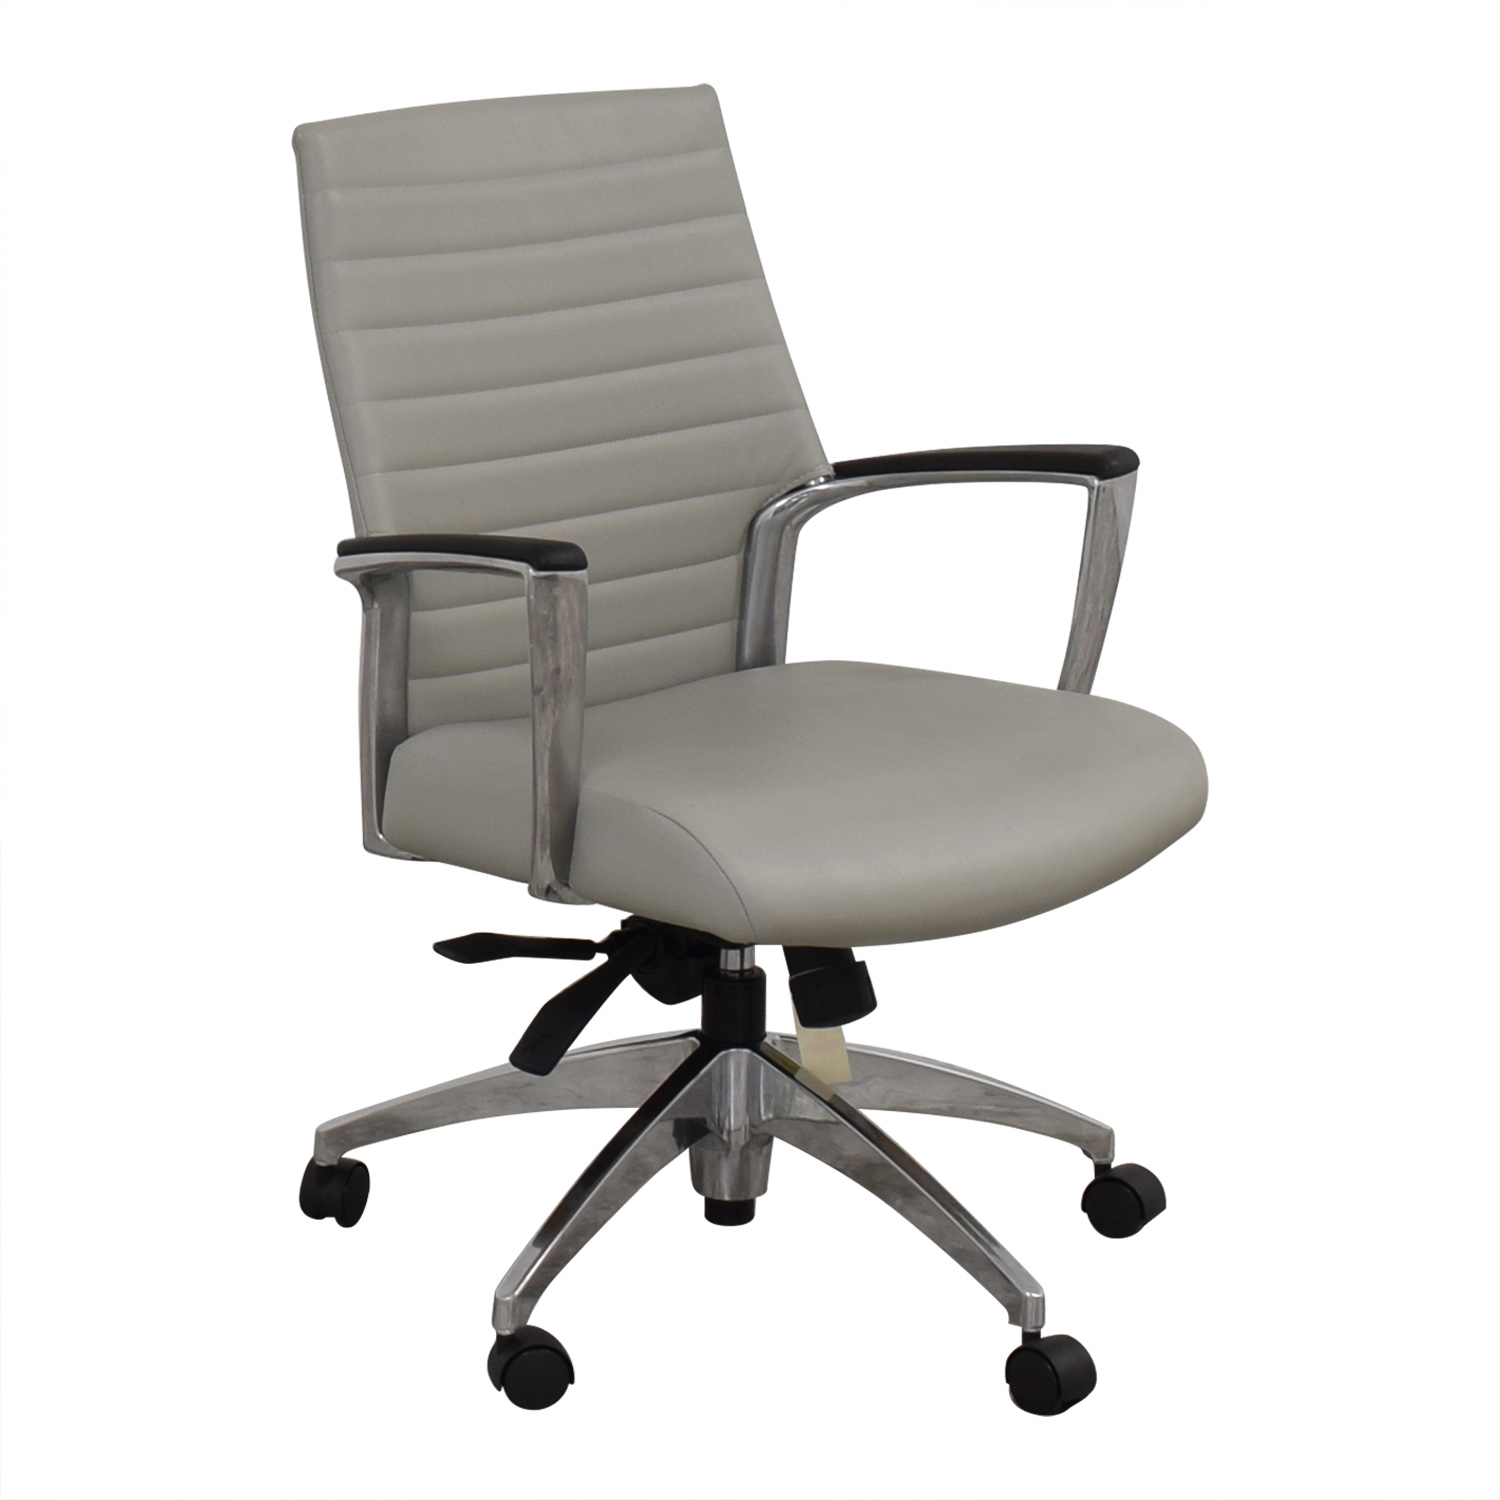 Global Global Accord Medium Back Tilter Chair price